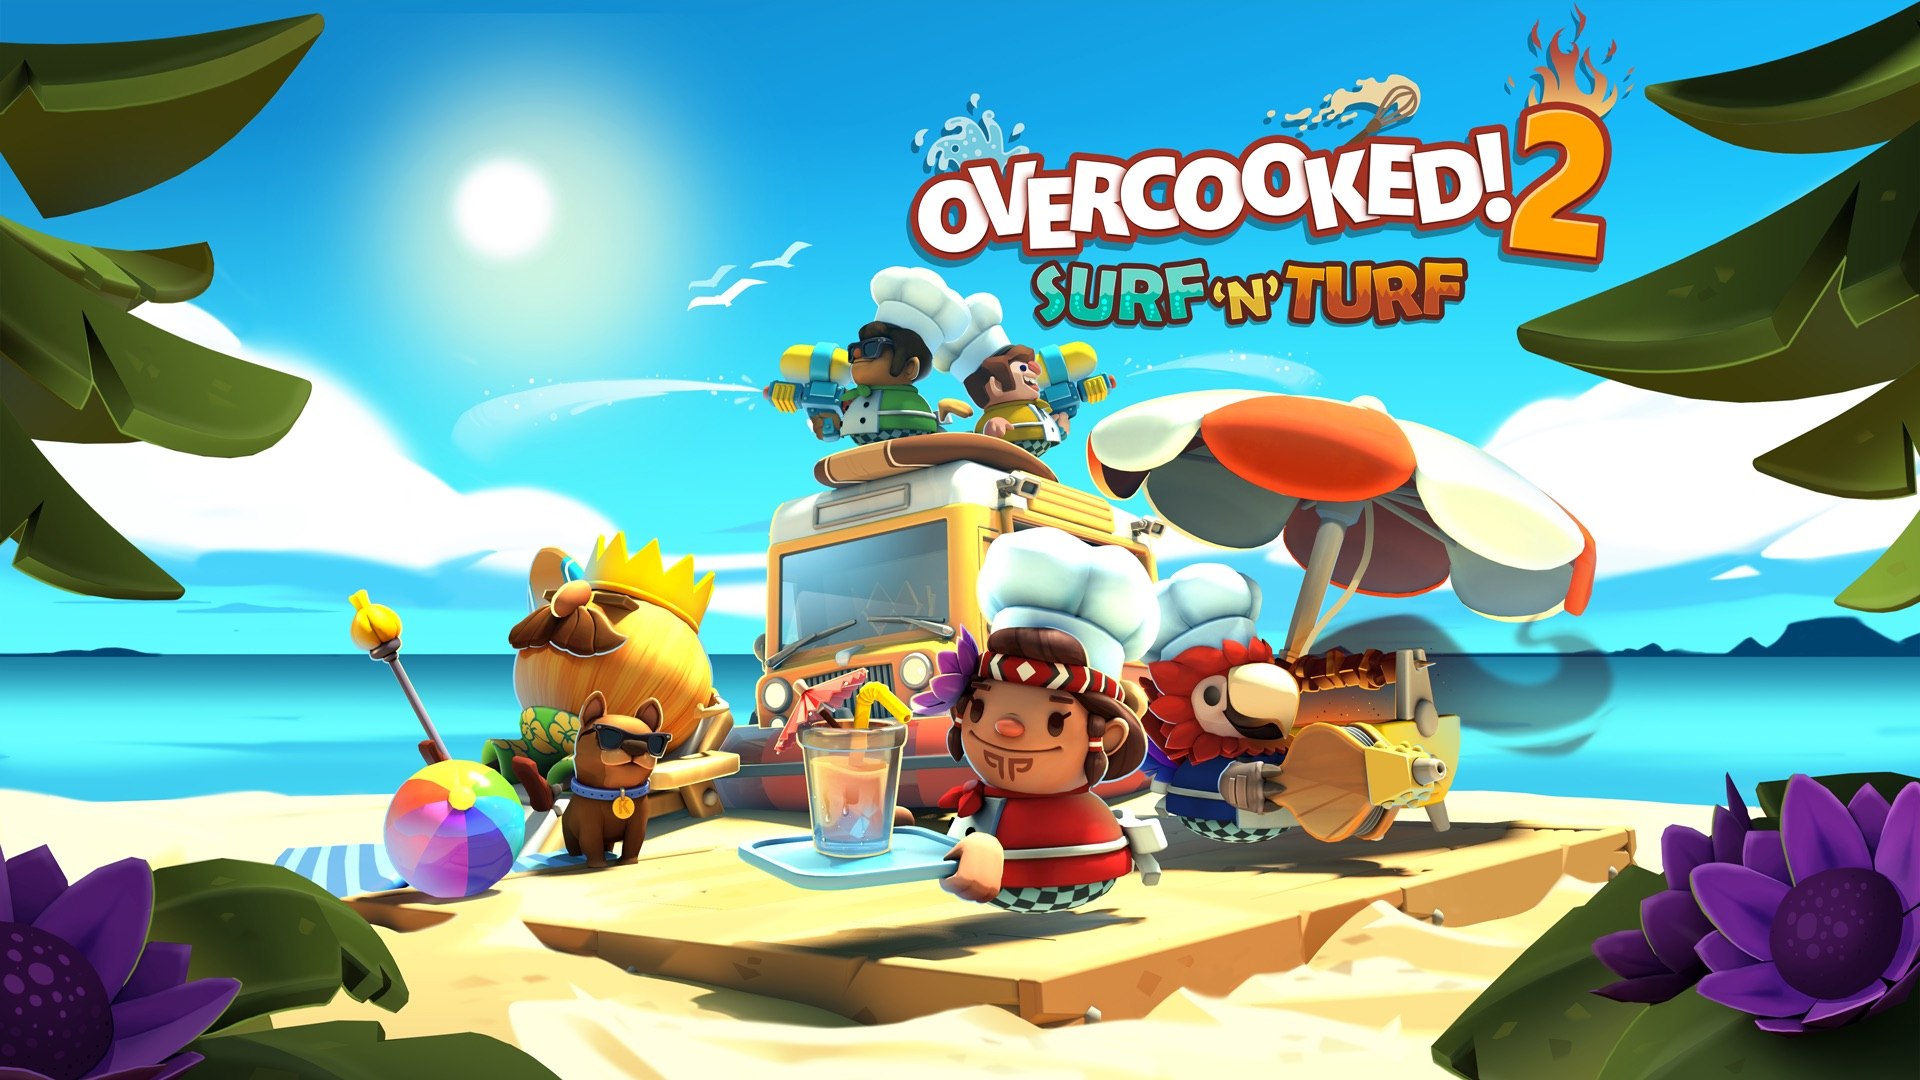 Overcooked! 2 Surf 'n' Turf DLC Free for Xbox Game Pass Ultimate members!